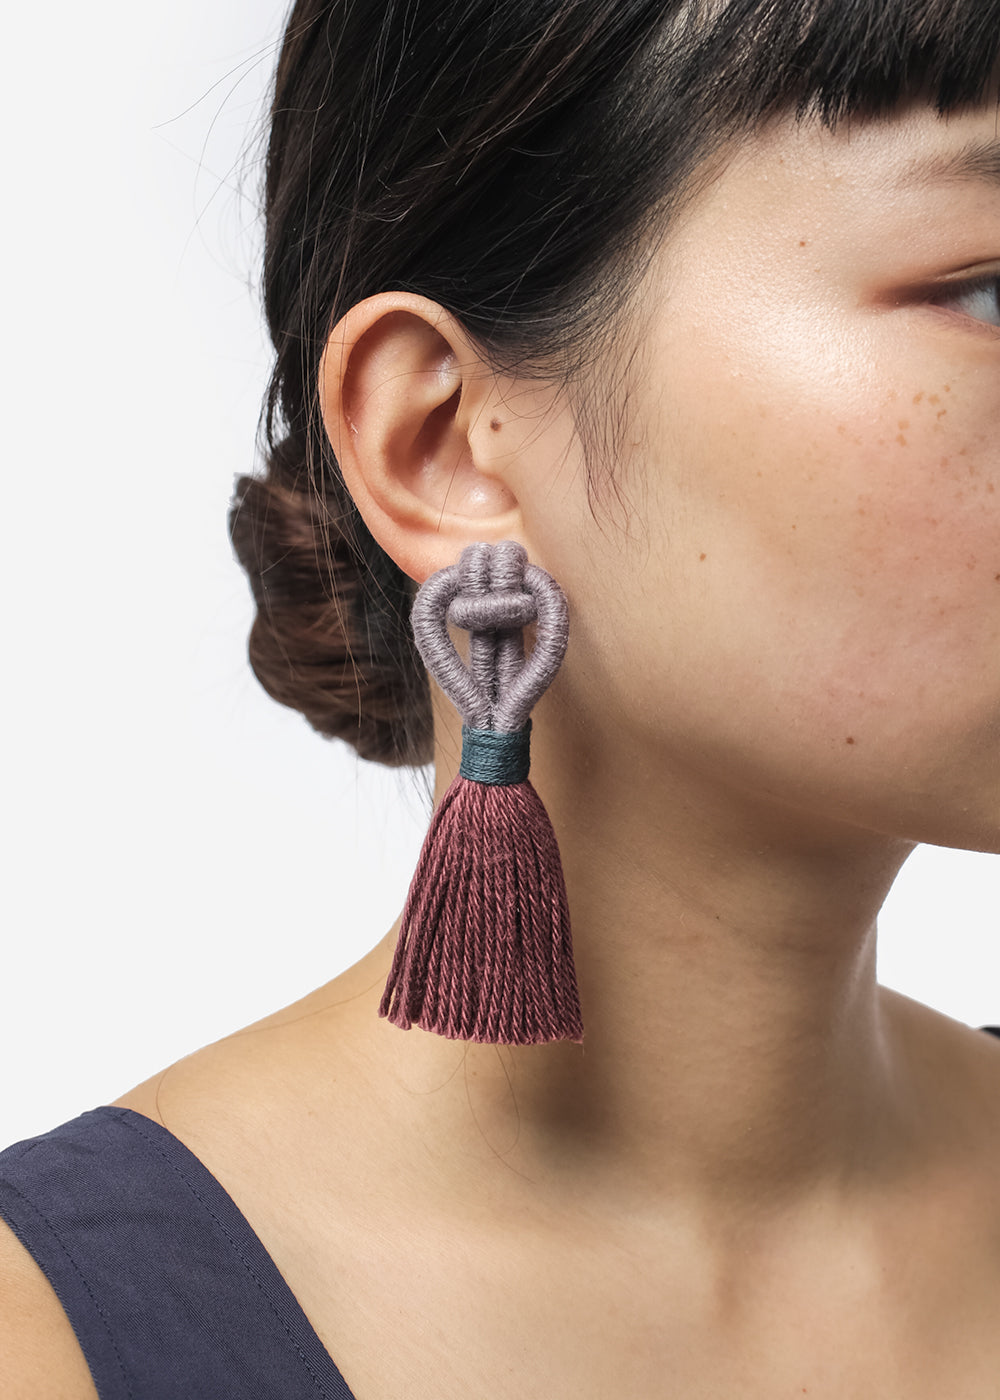 TALEE Angsa Earrings — Shop sustainable fashion and slow fashion at New Classics Studios